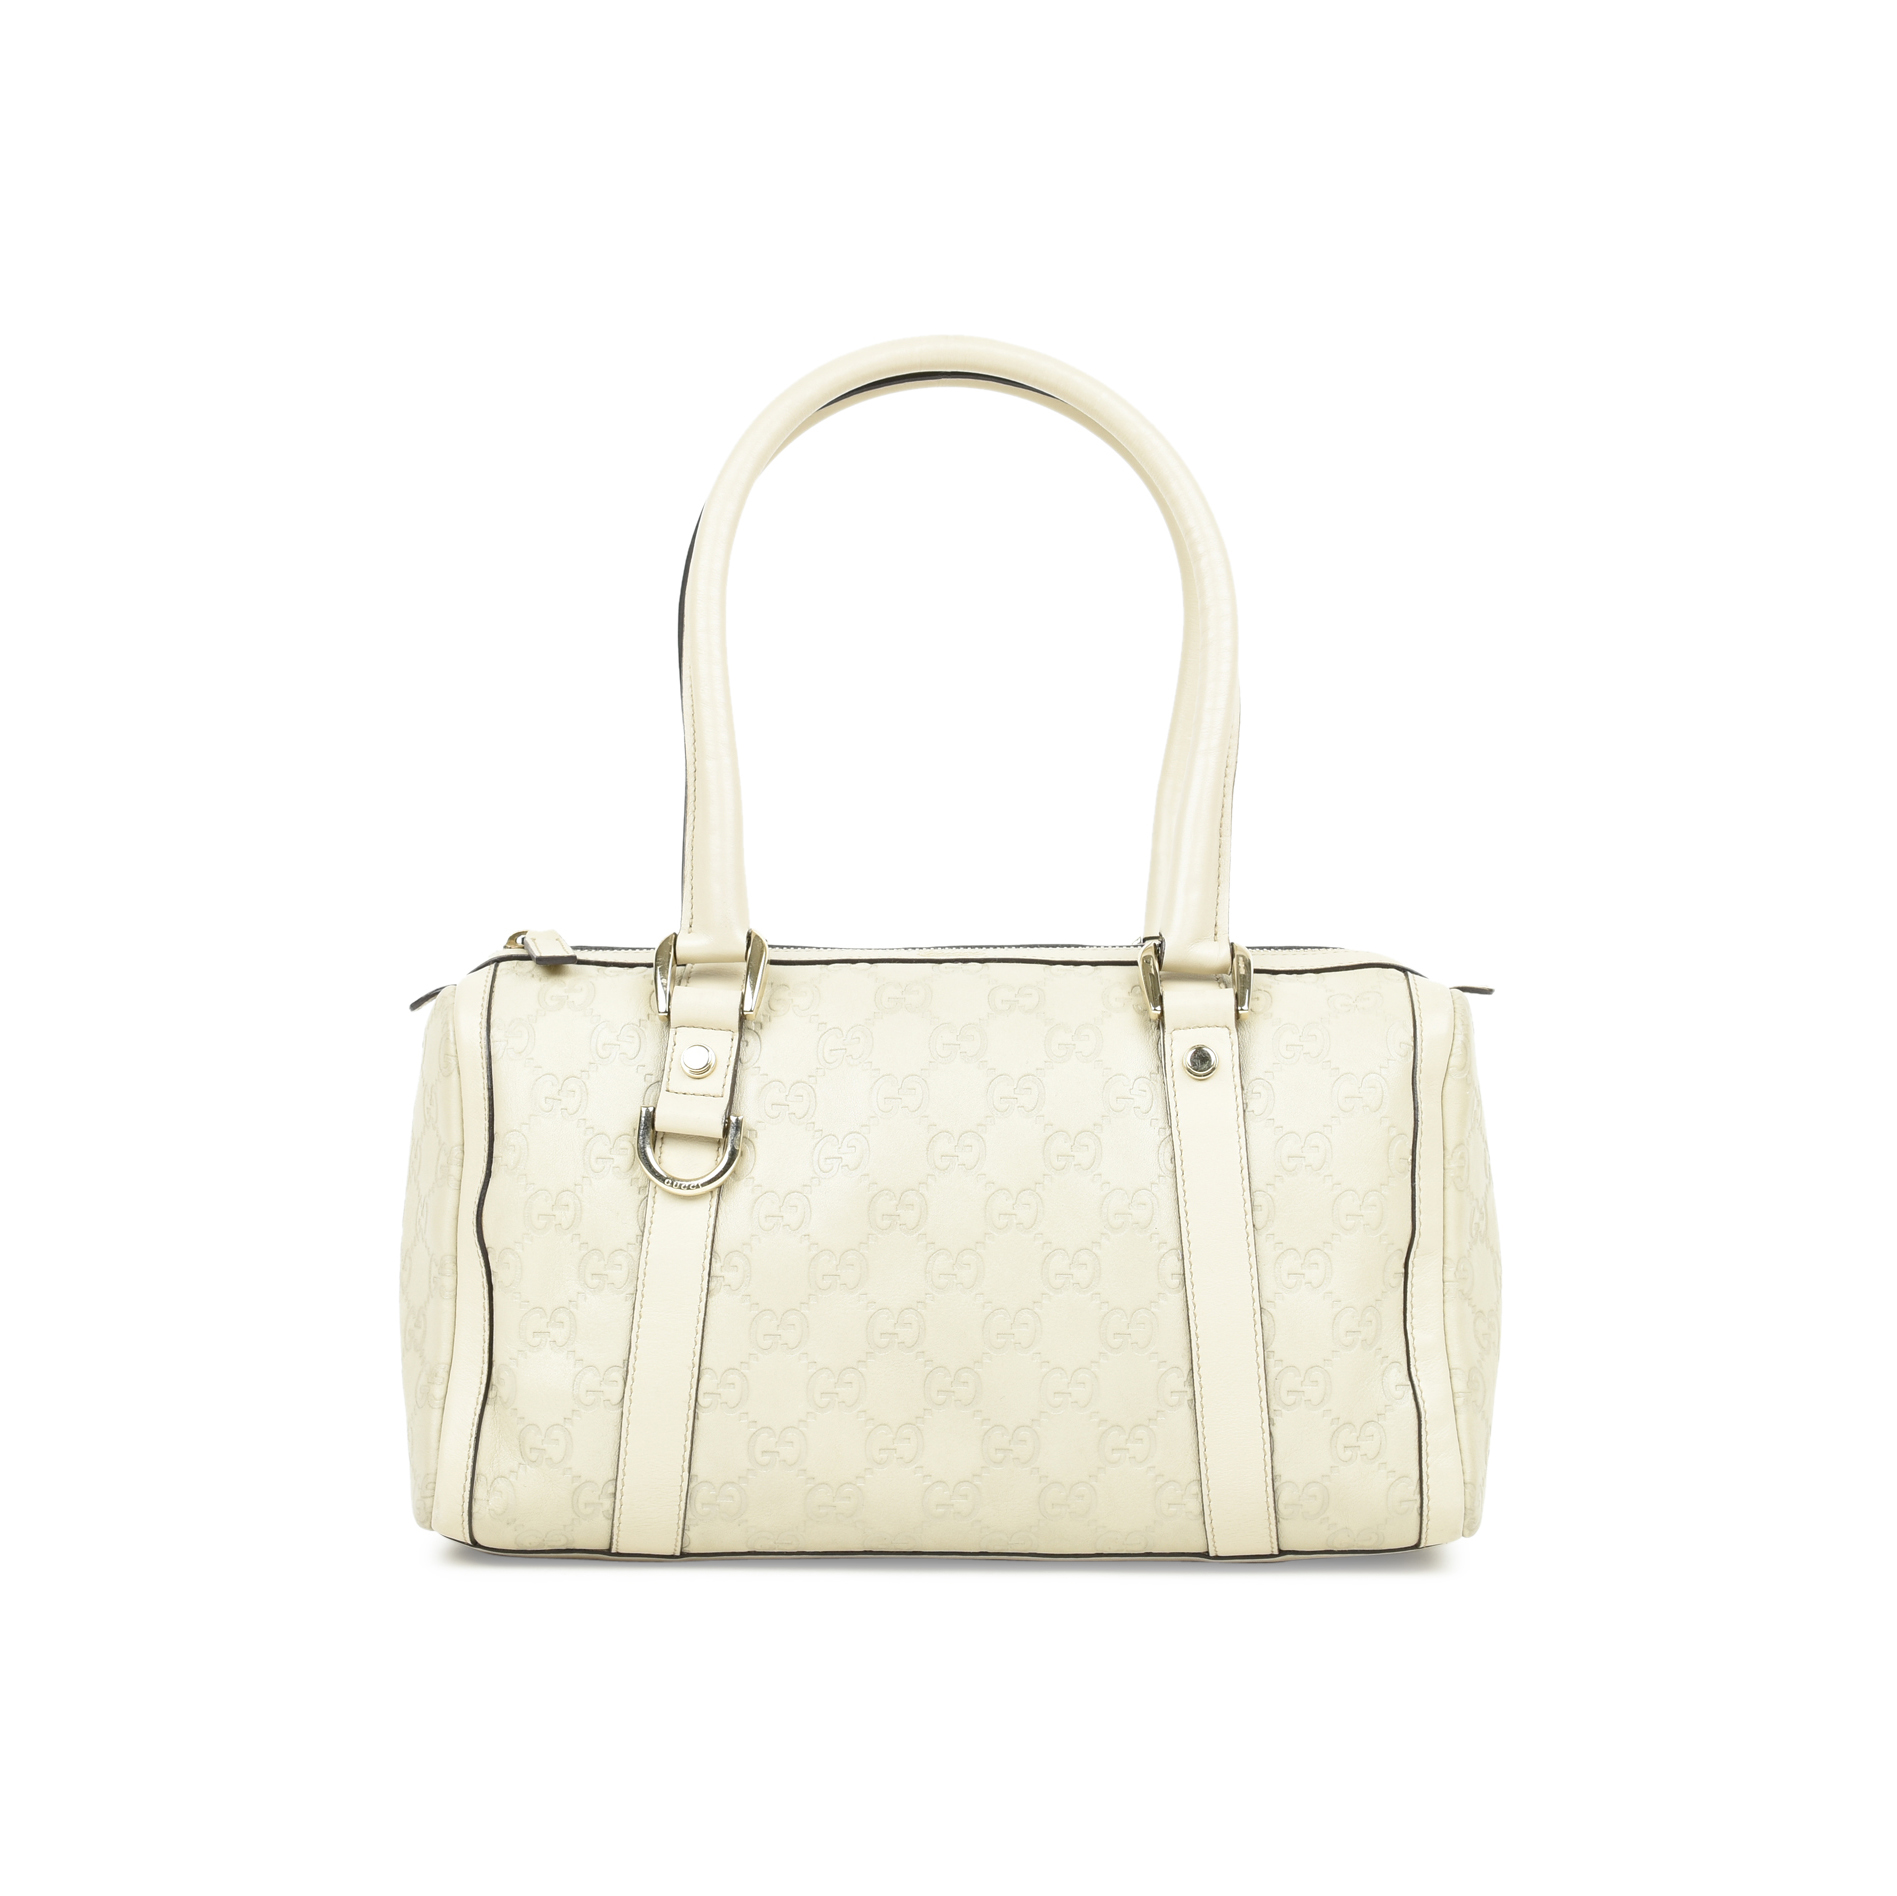 27a3be37c1899c Authentic Second Hand Gucci Abbey Boston Bag (PSS-500-00004) | THE FIFTH  COLLECTION